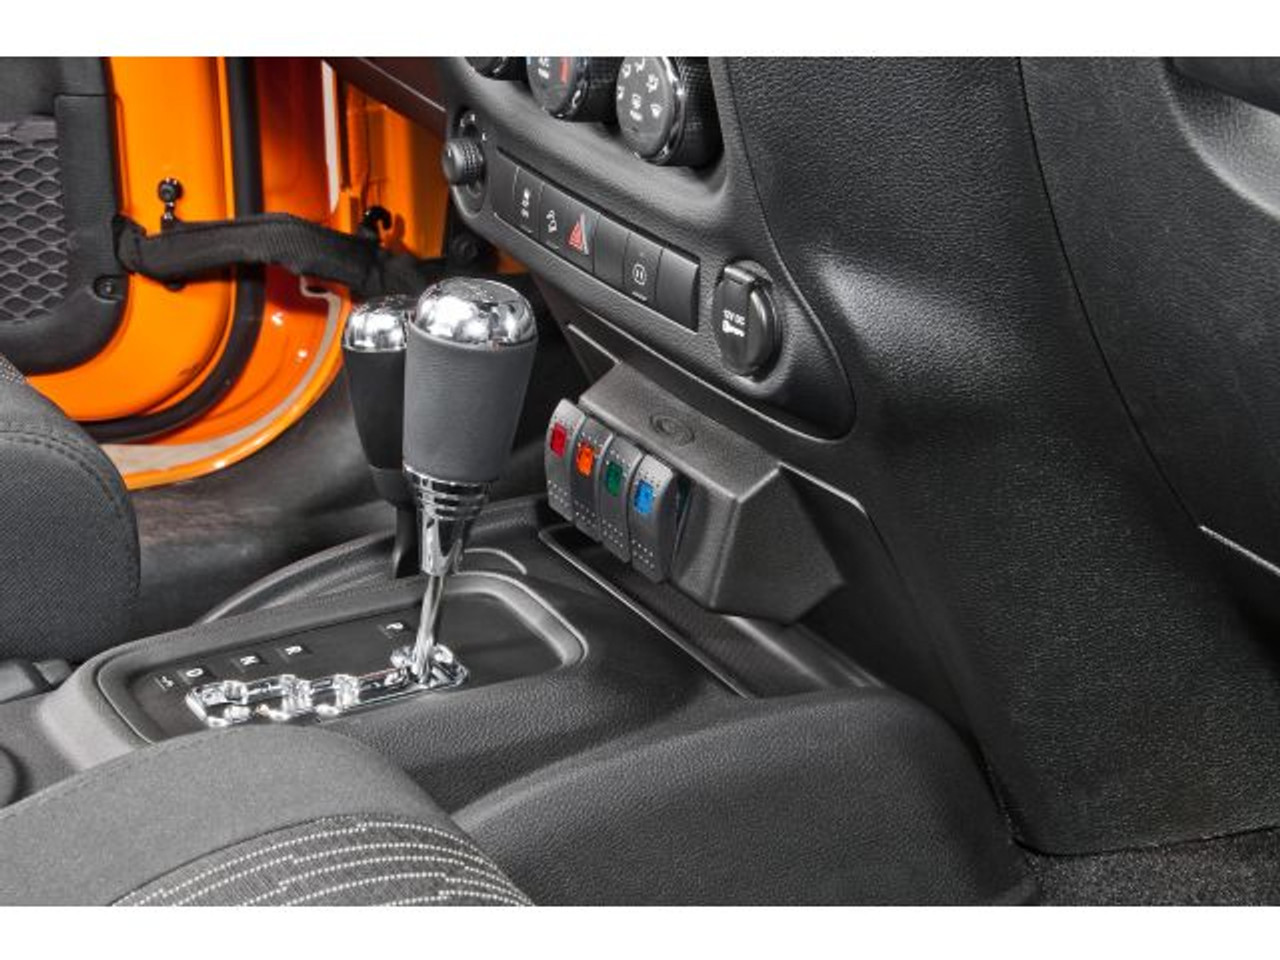 Dayster Lower Dash Switch Panel with Switches Mounted in Jeep Wrangler JK